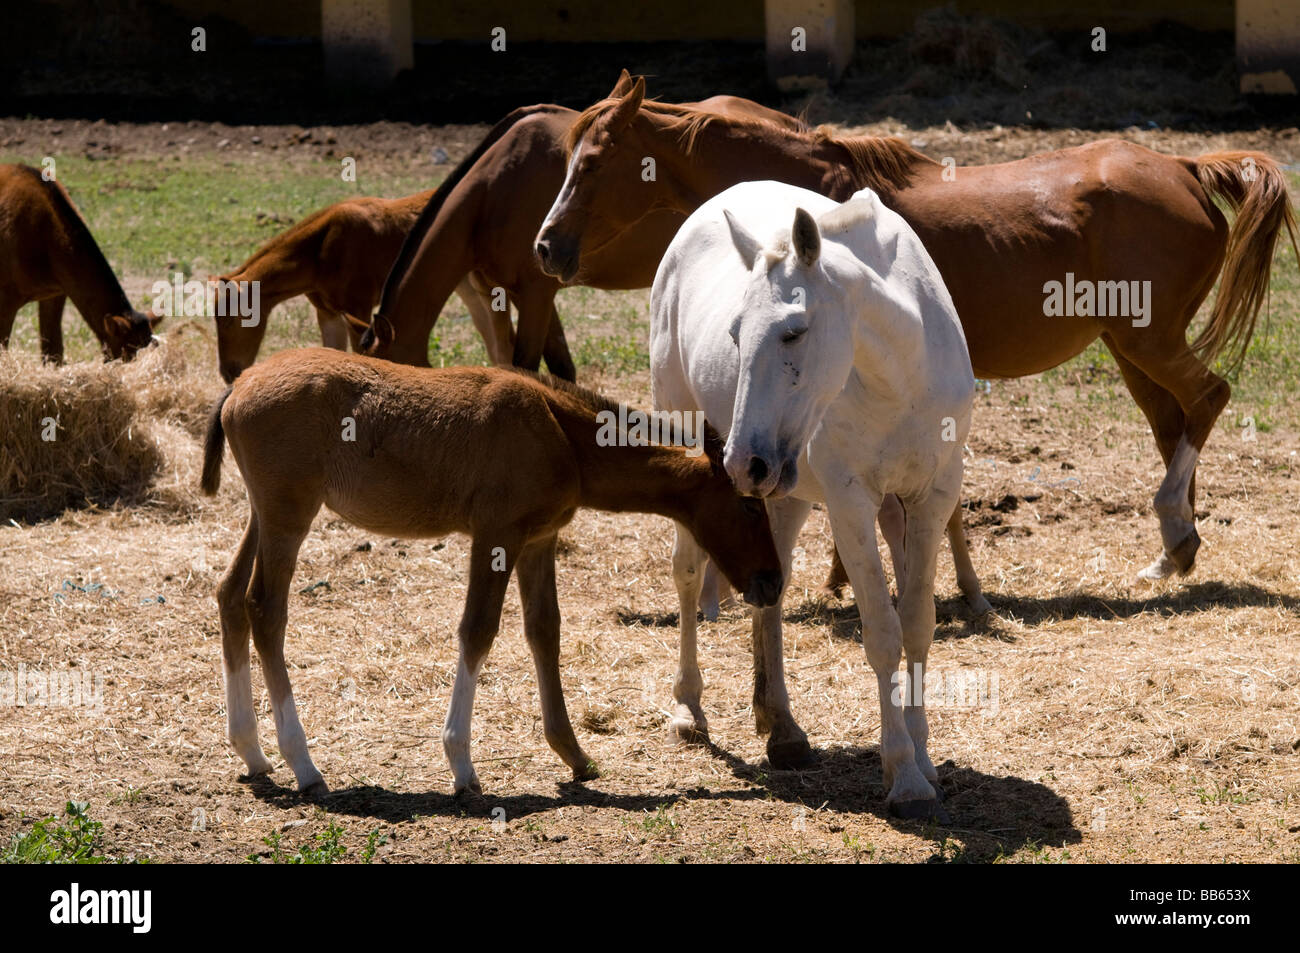 lusitano horse foal feeding area in the 'Coudelaria de Alter do Chão', south of Portugal - Stock Image